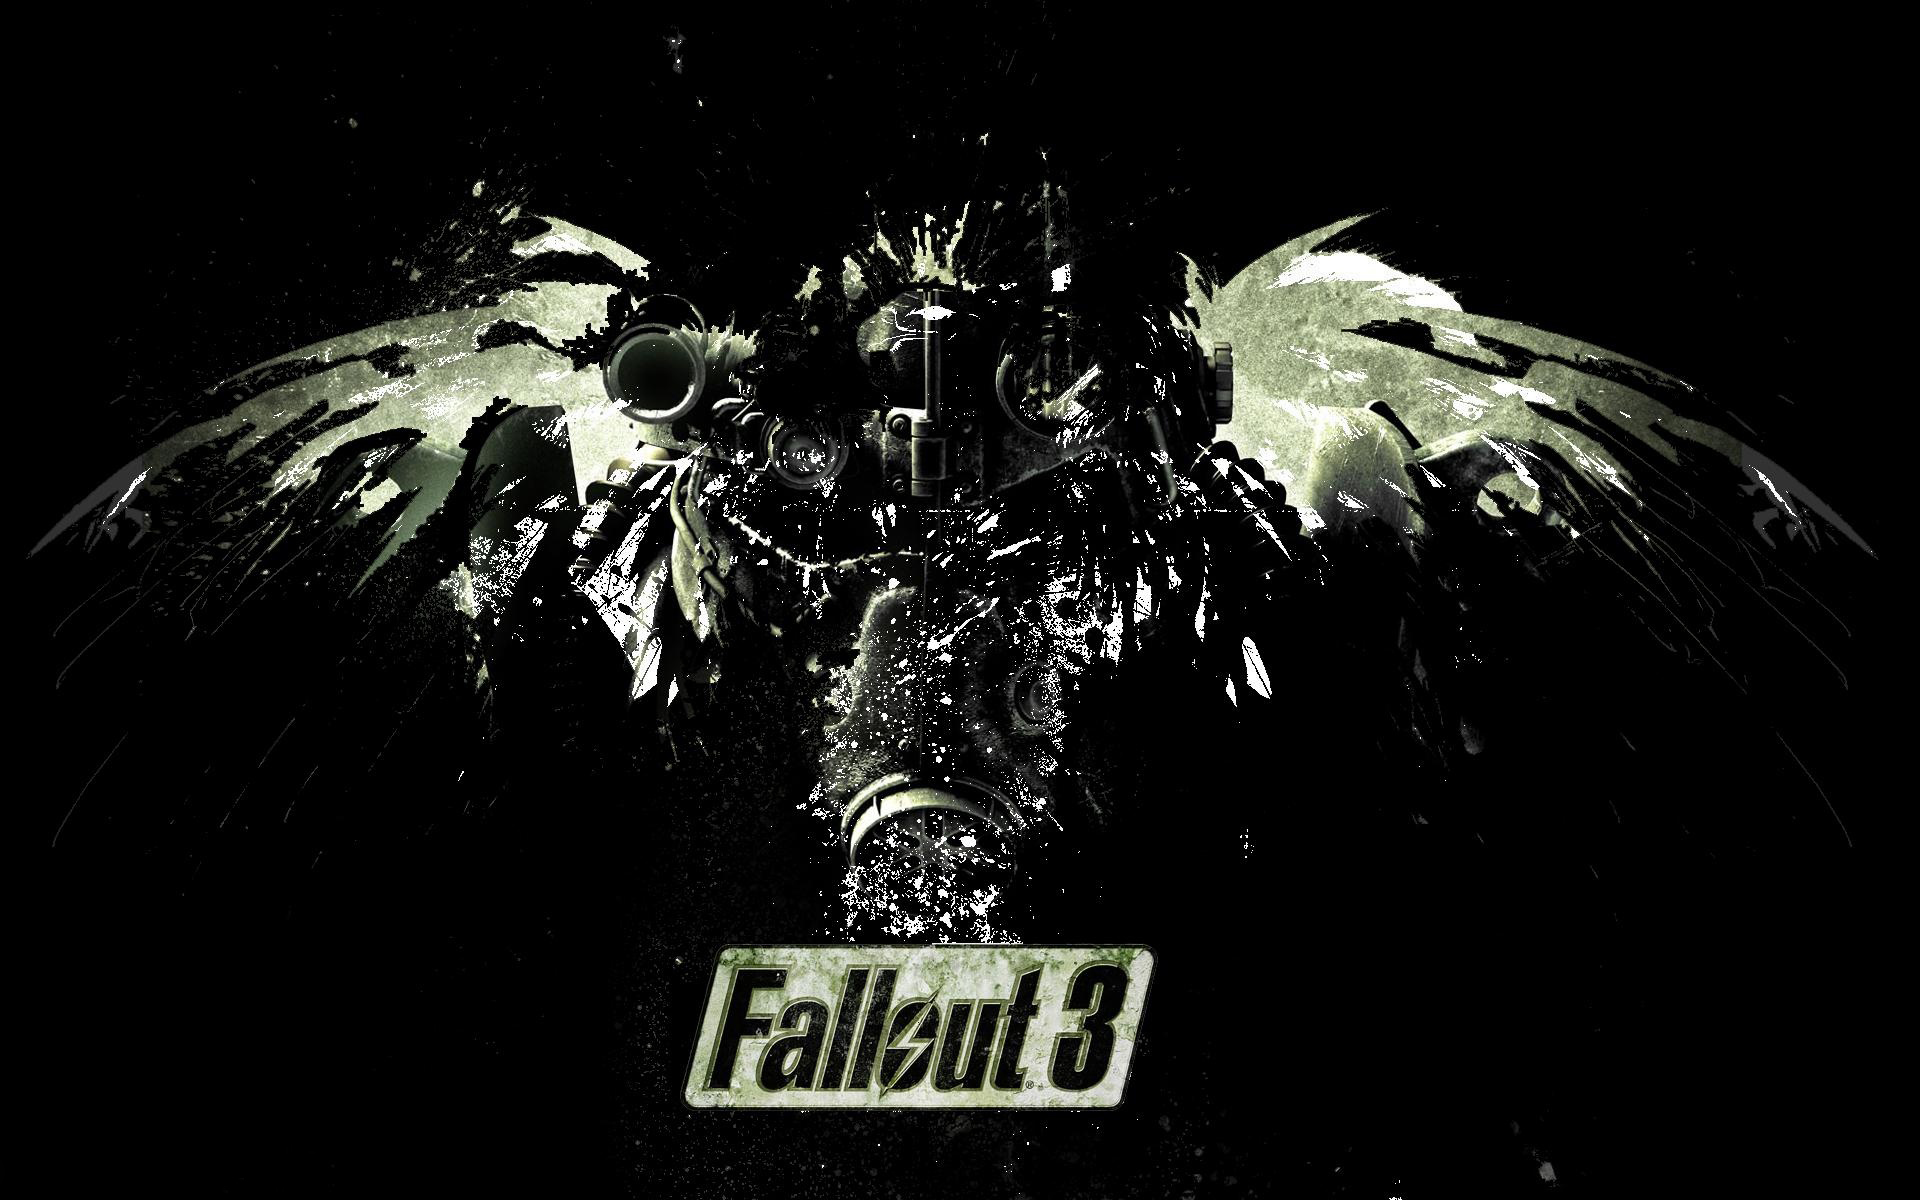 High Resolution Fallout Wallpaper 4k 1920x1200 Wallpaper Teahub Io